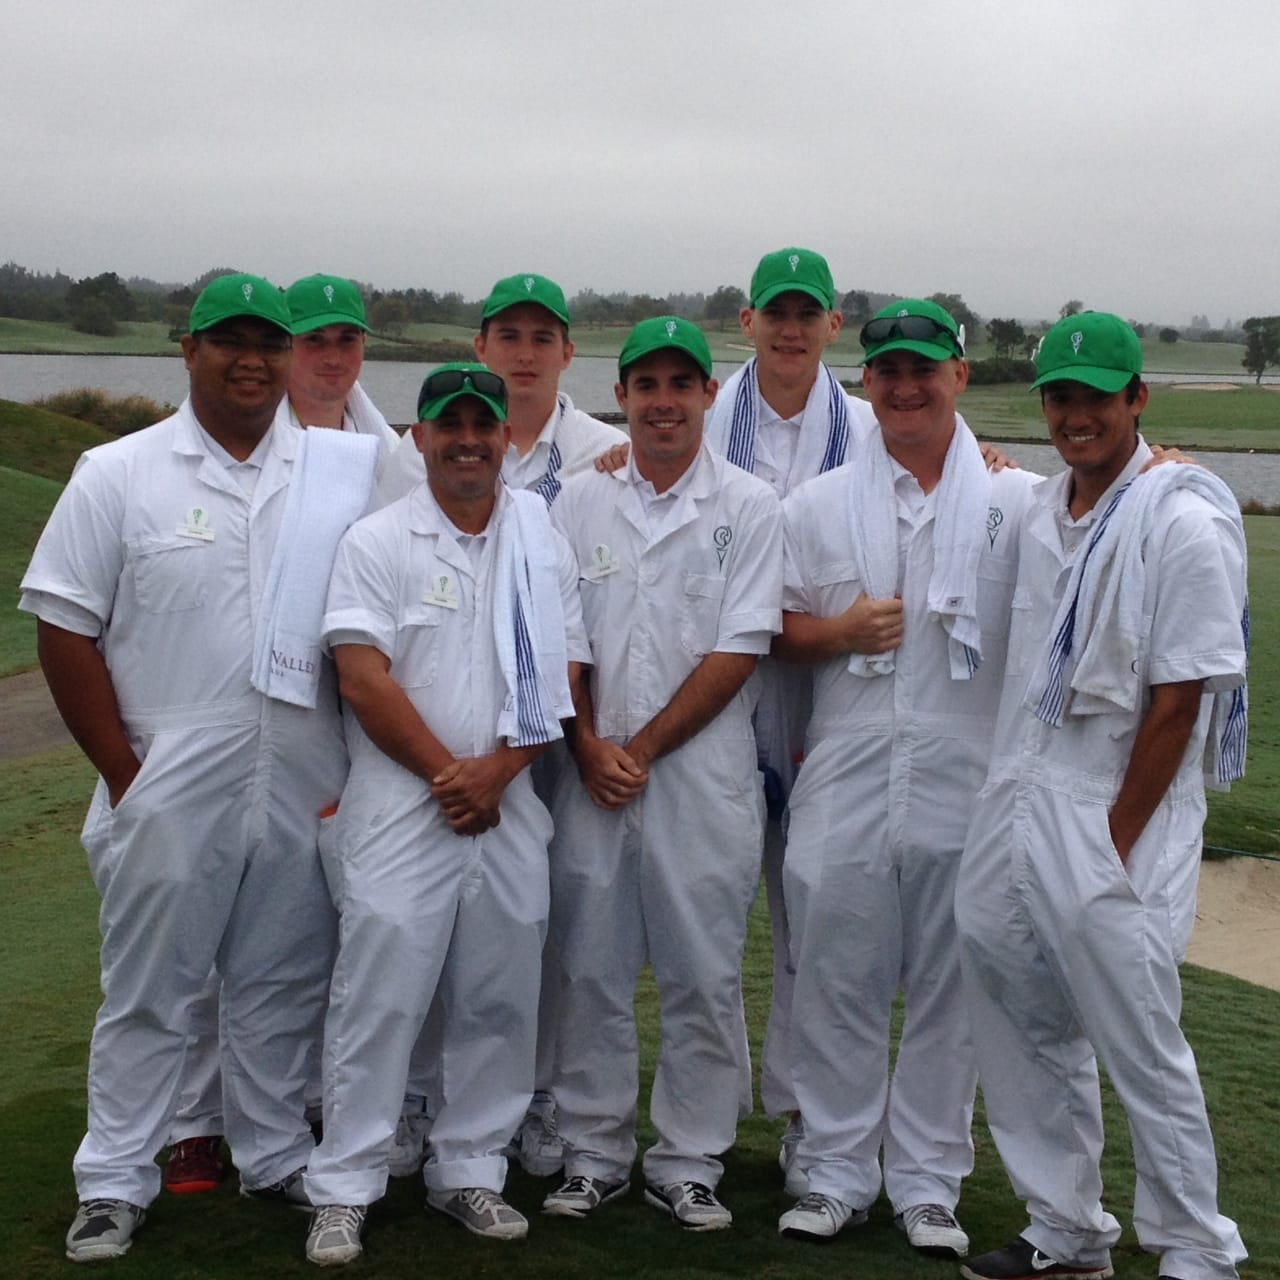 KU College of Golf & Sport Management Students Caddy at Quail Valley